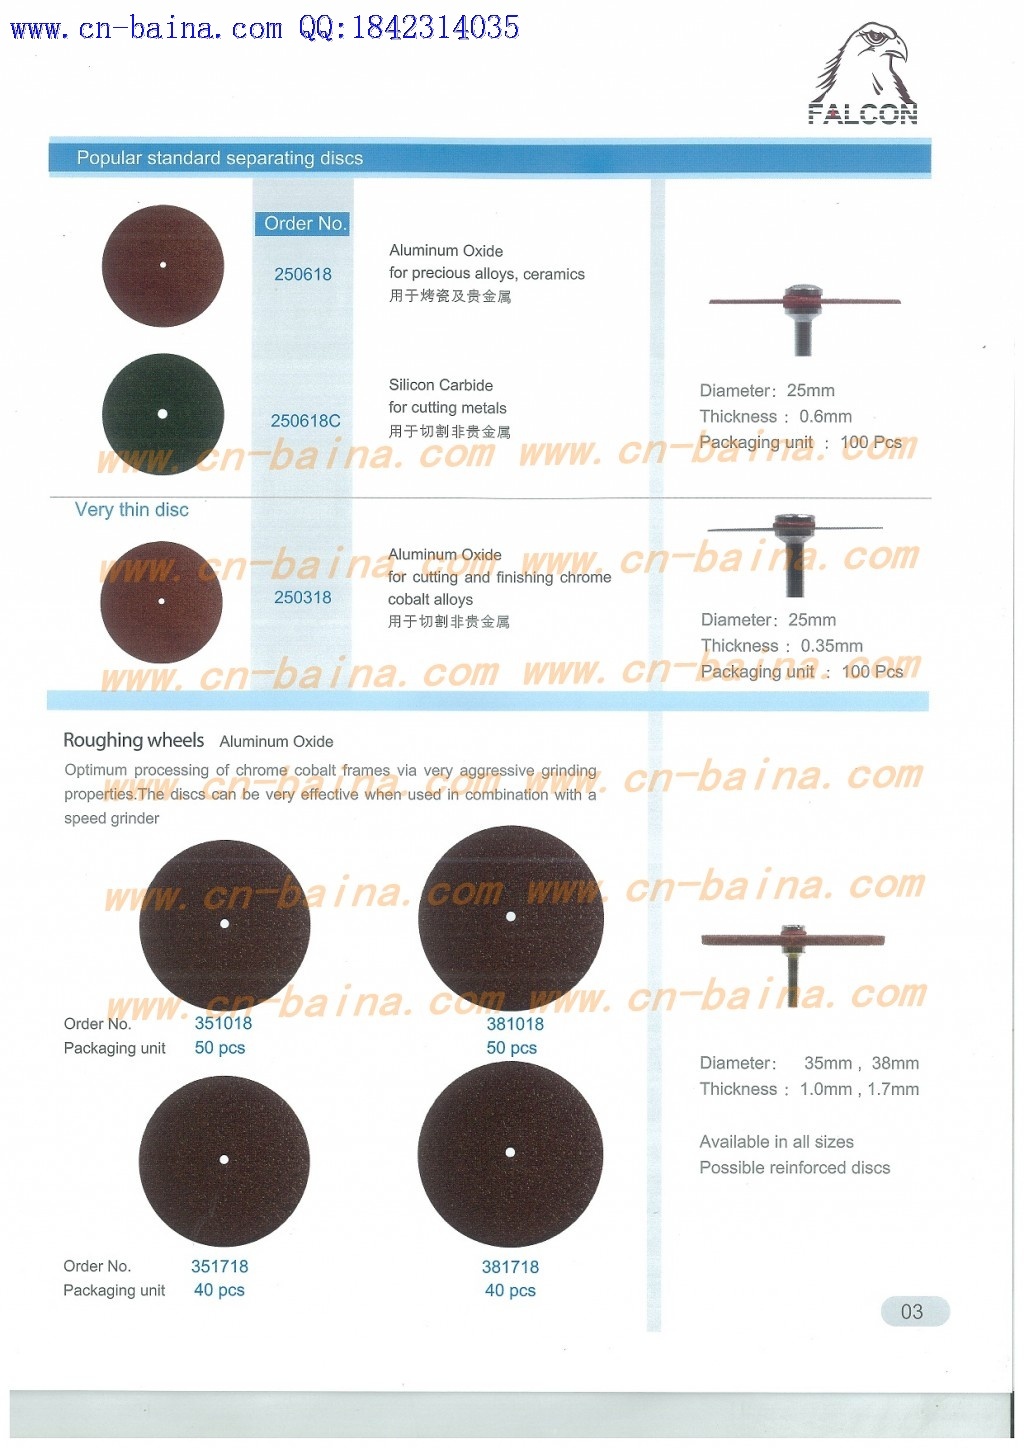 Aluminum oxide silicon carbide cutting discs